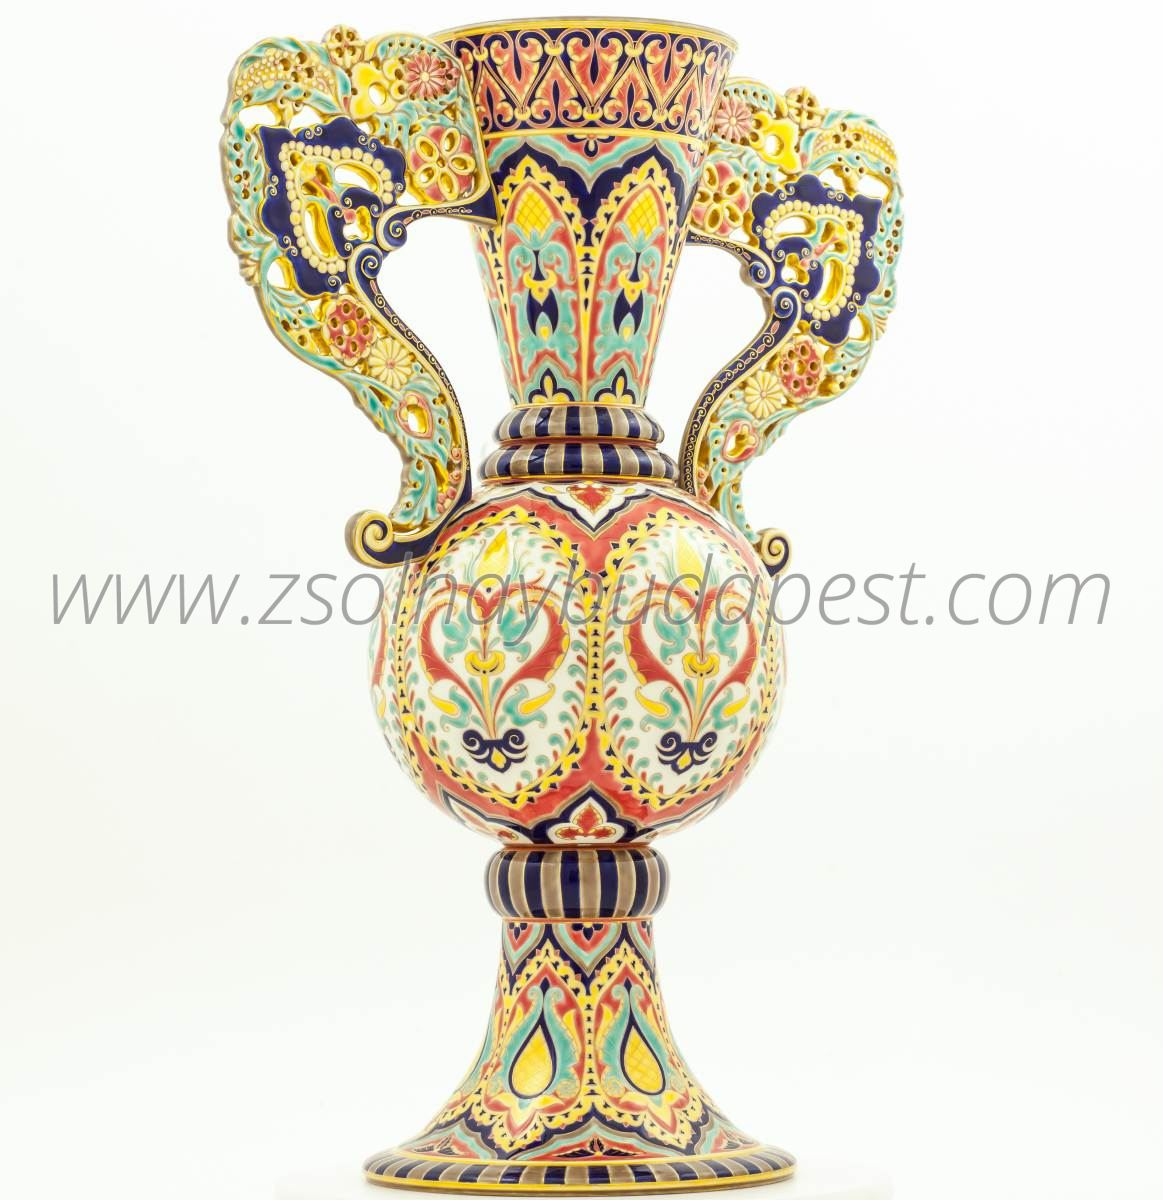 Limited edition Alhambra vase 4/10